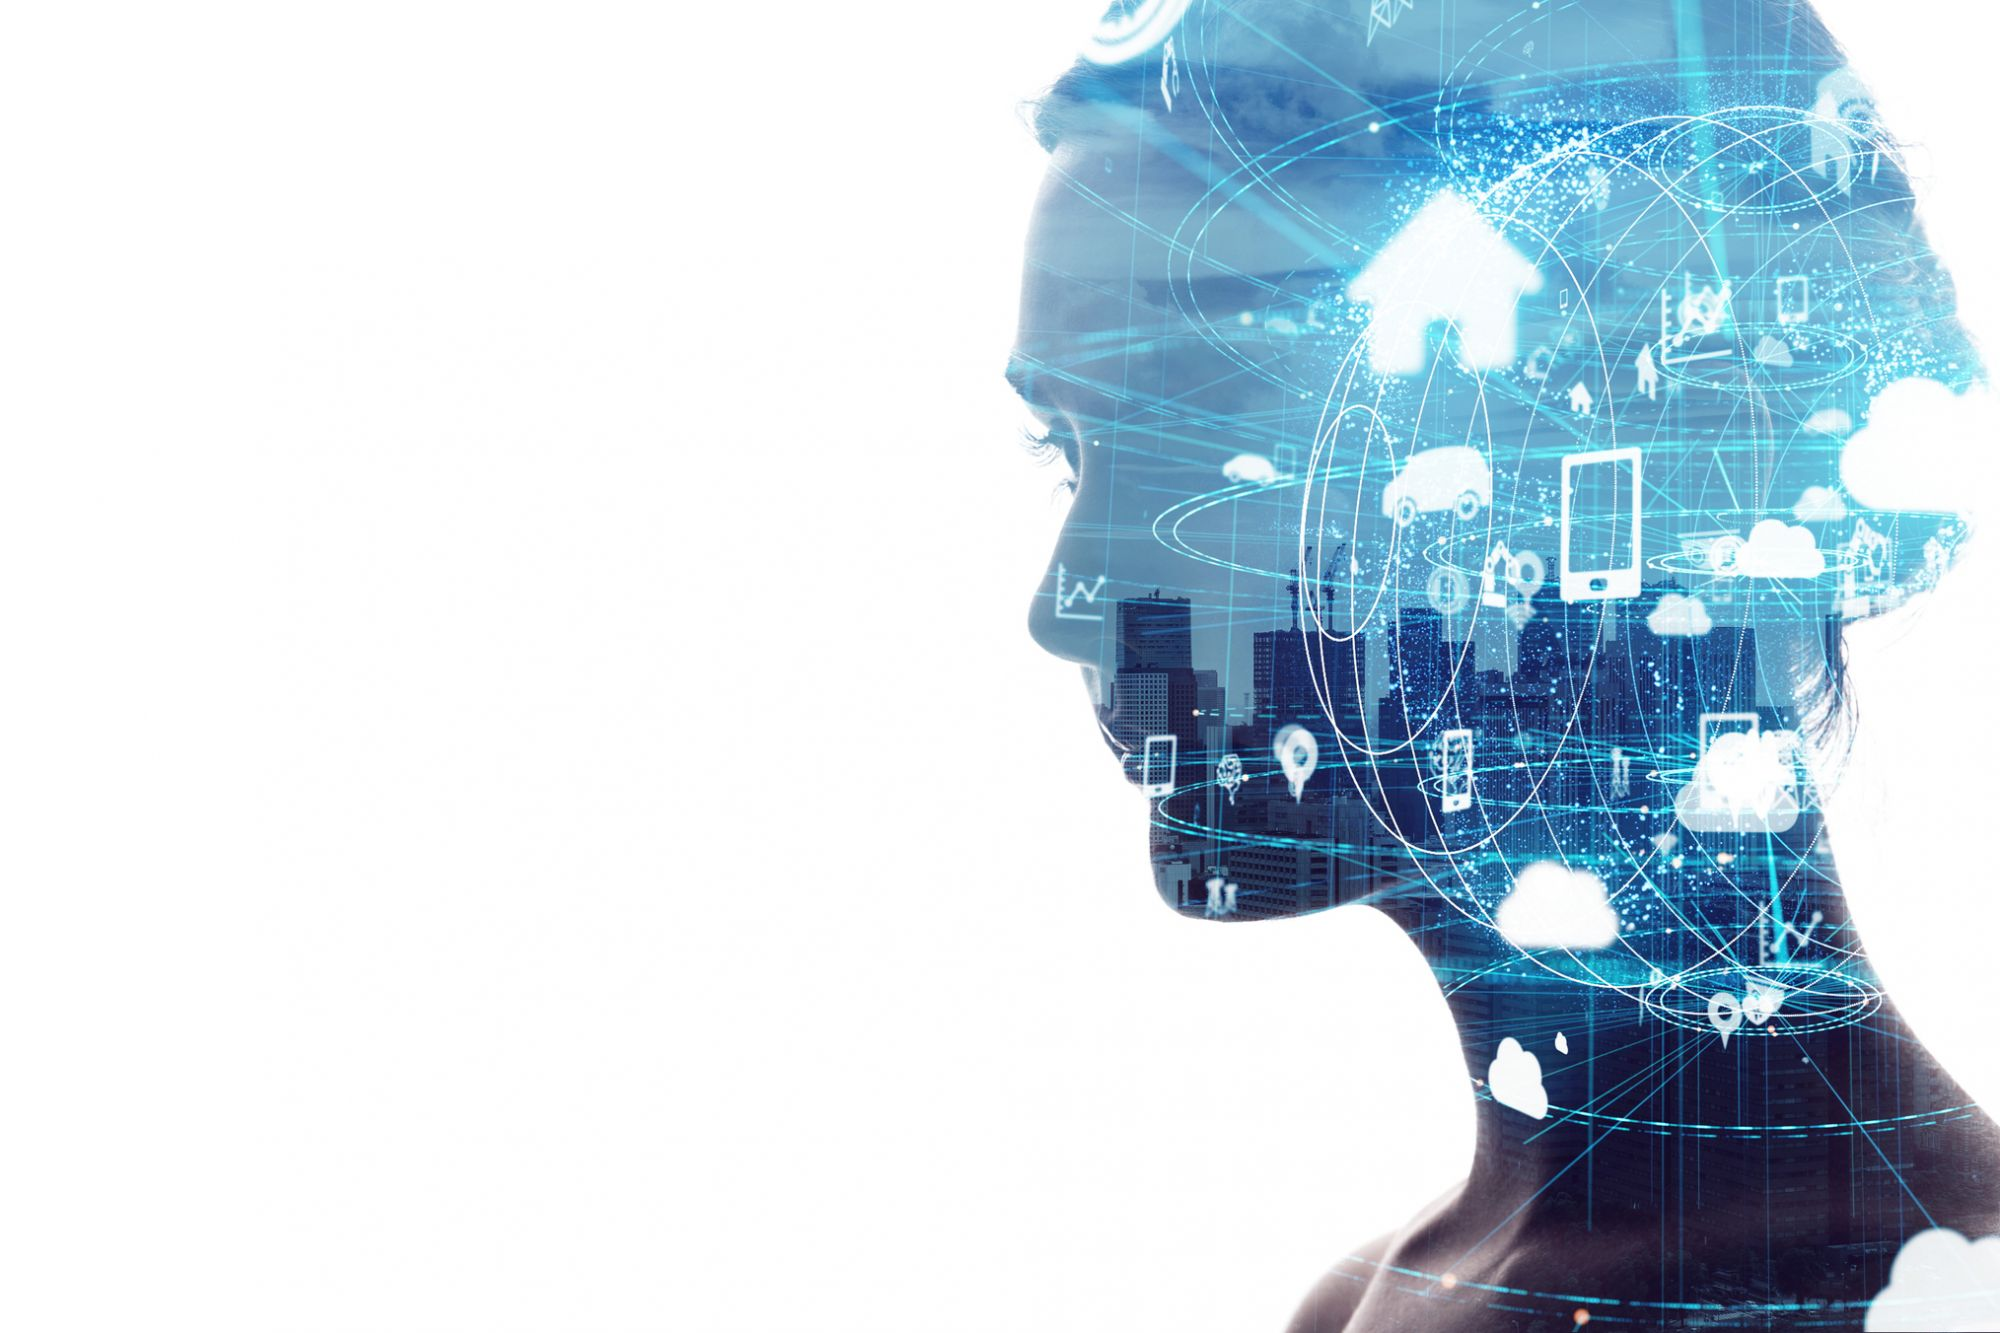 Technologists Are Creating Artificial Intelligence to Help Us Tap Into Our Humanity. Here's How (and Why).